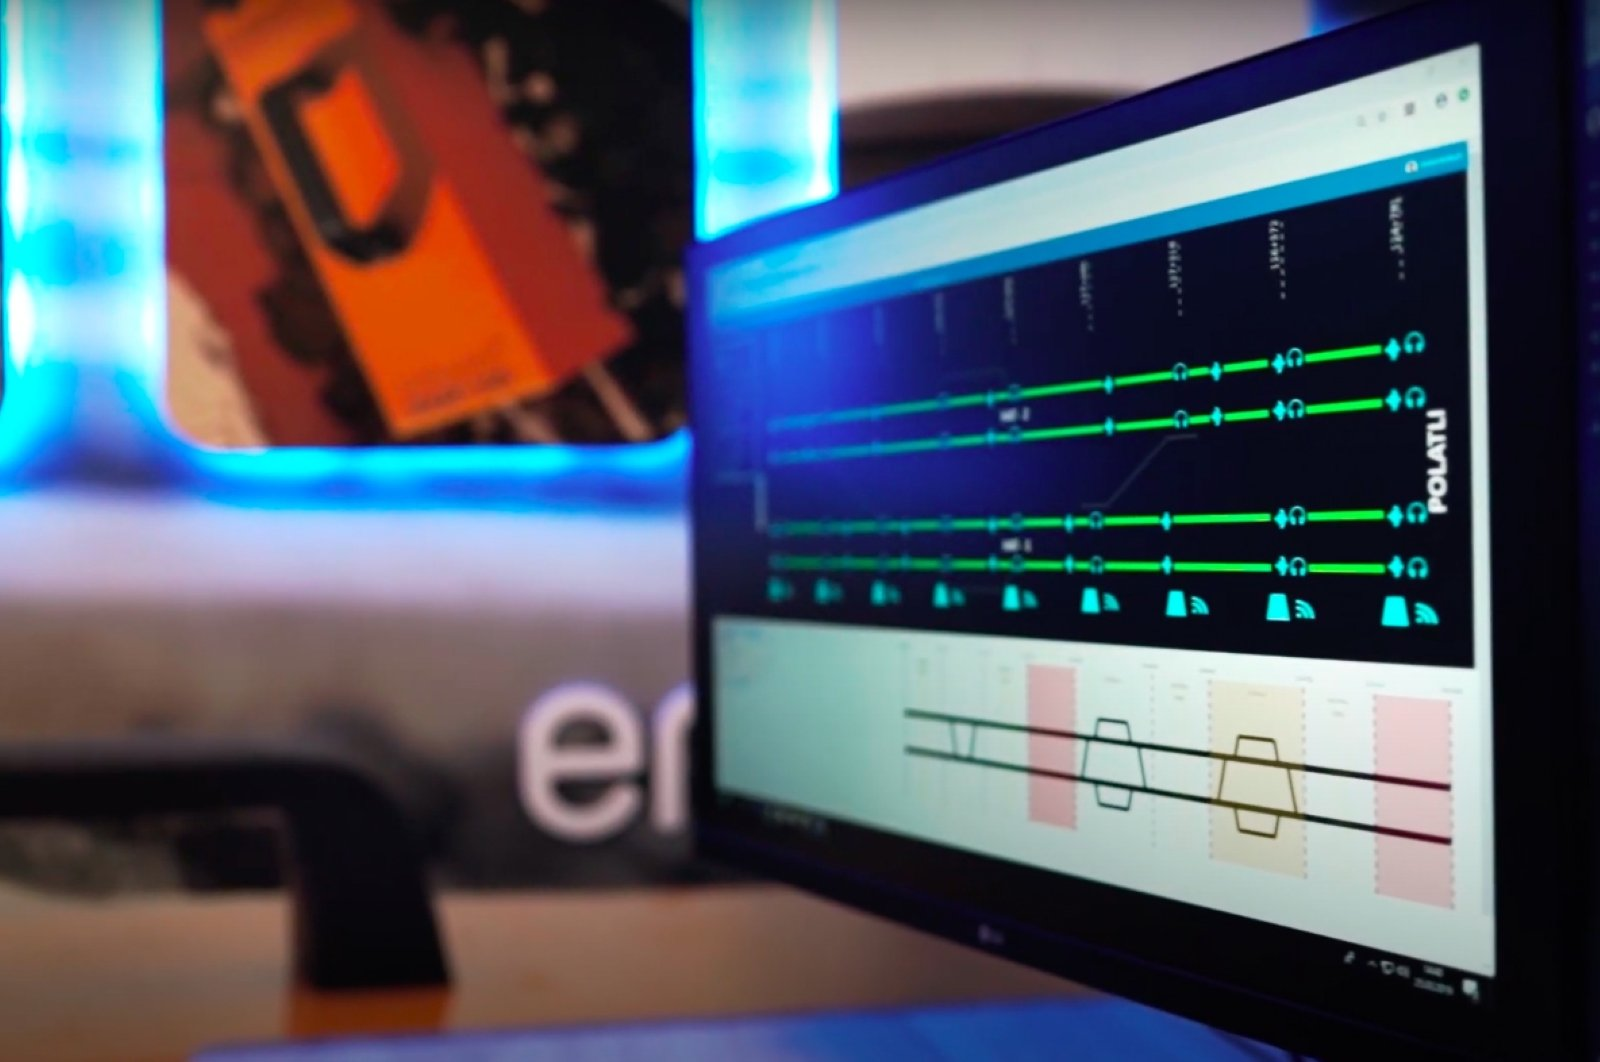 A part of RailAcoustic system developed by theEnekom Energy Computing and Engineering A.Ş, Sept. 15, 2020. (Photo by Enekom via AA)